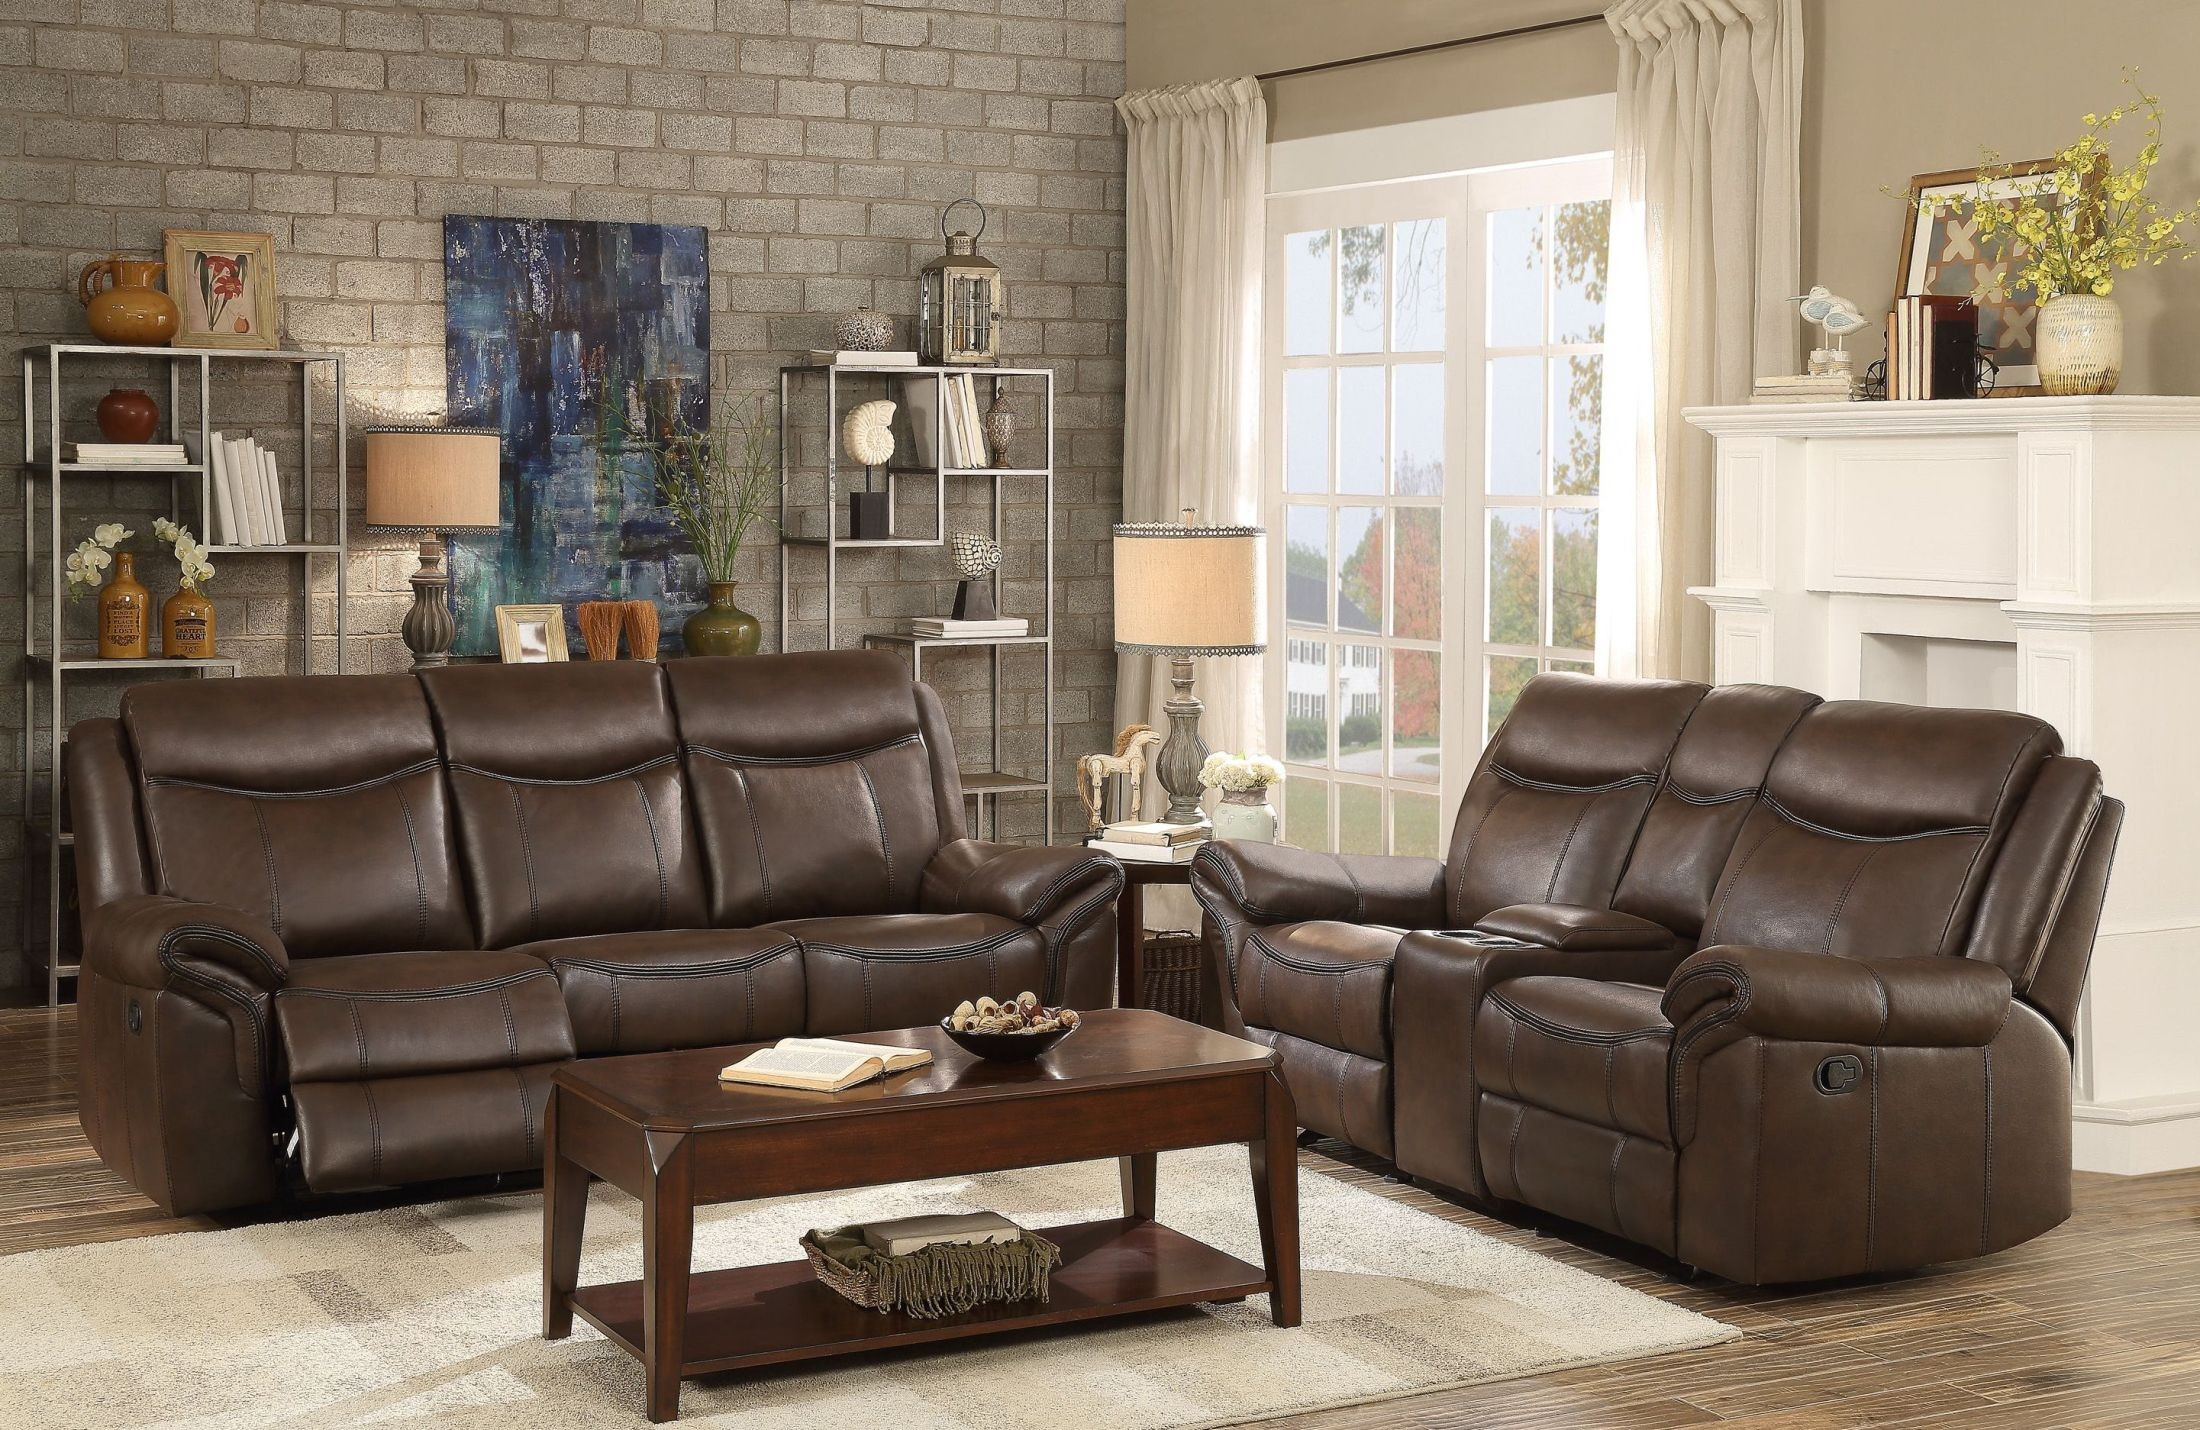 Aram dark brown double reclining living room set from - Black and brown living room furniture ...